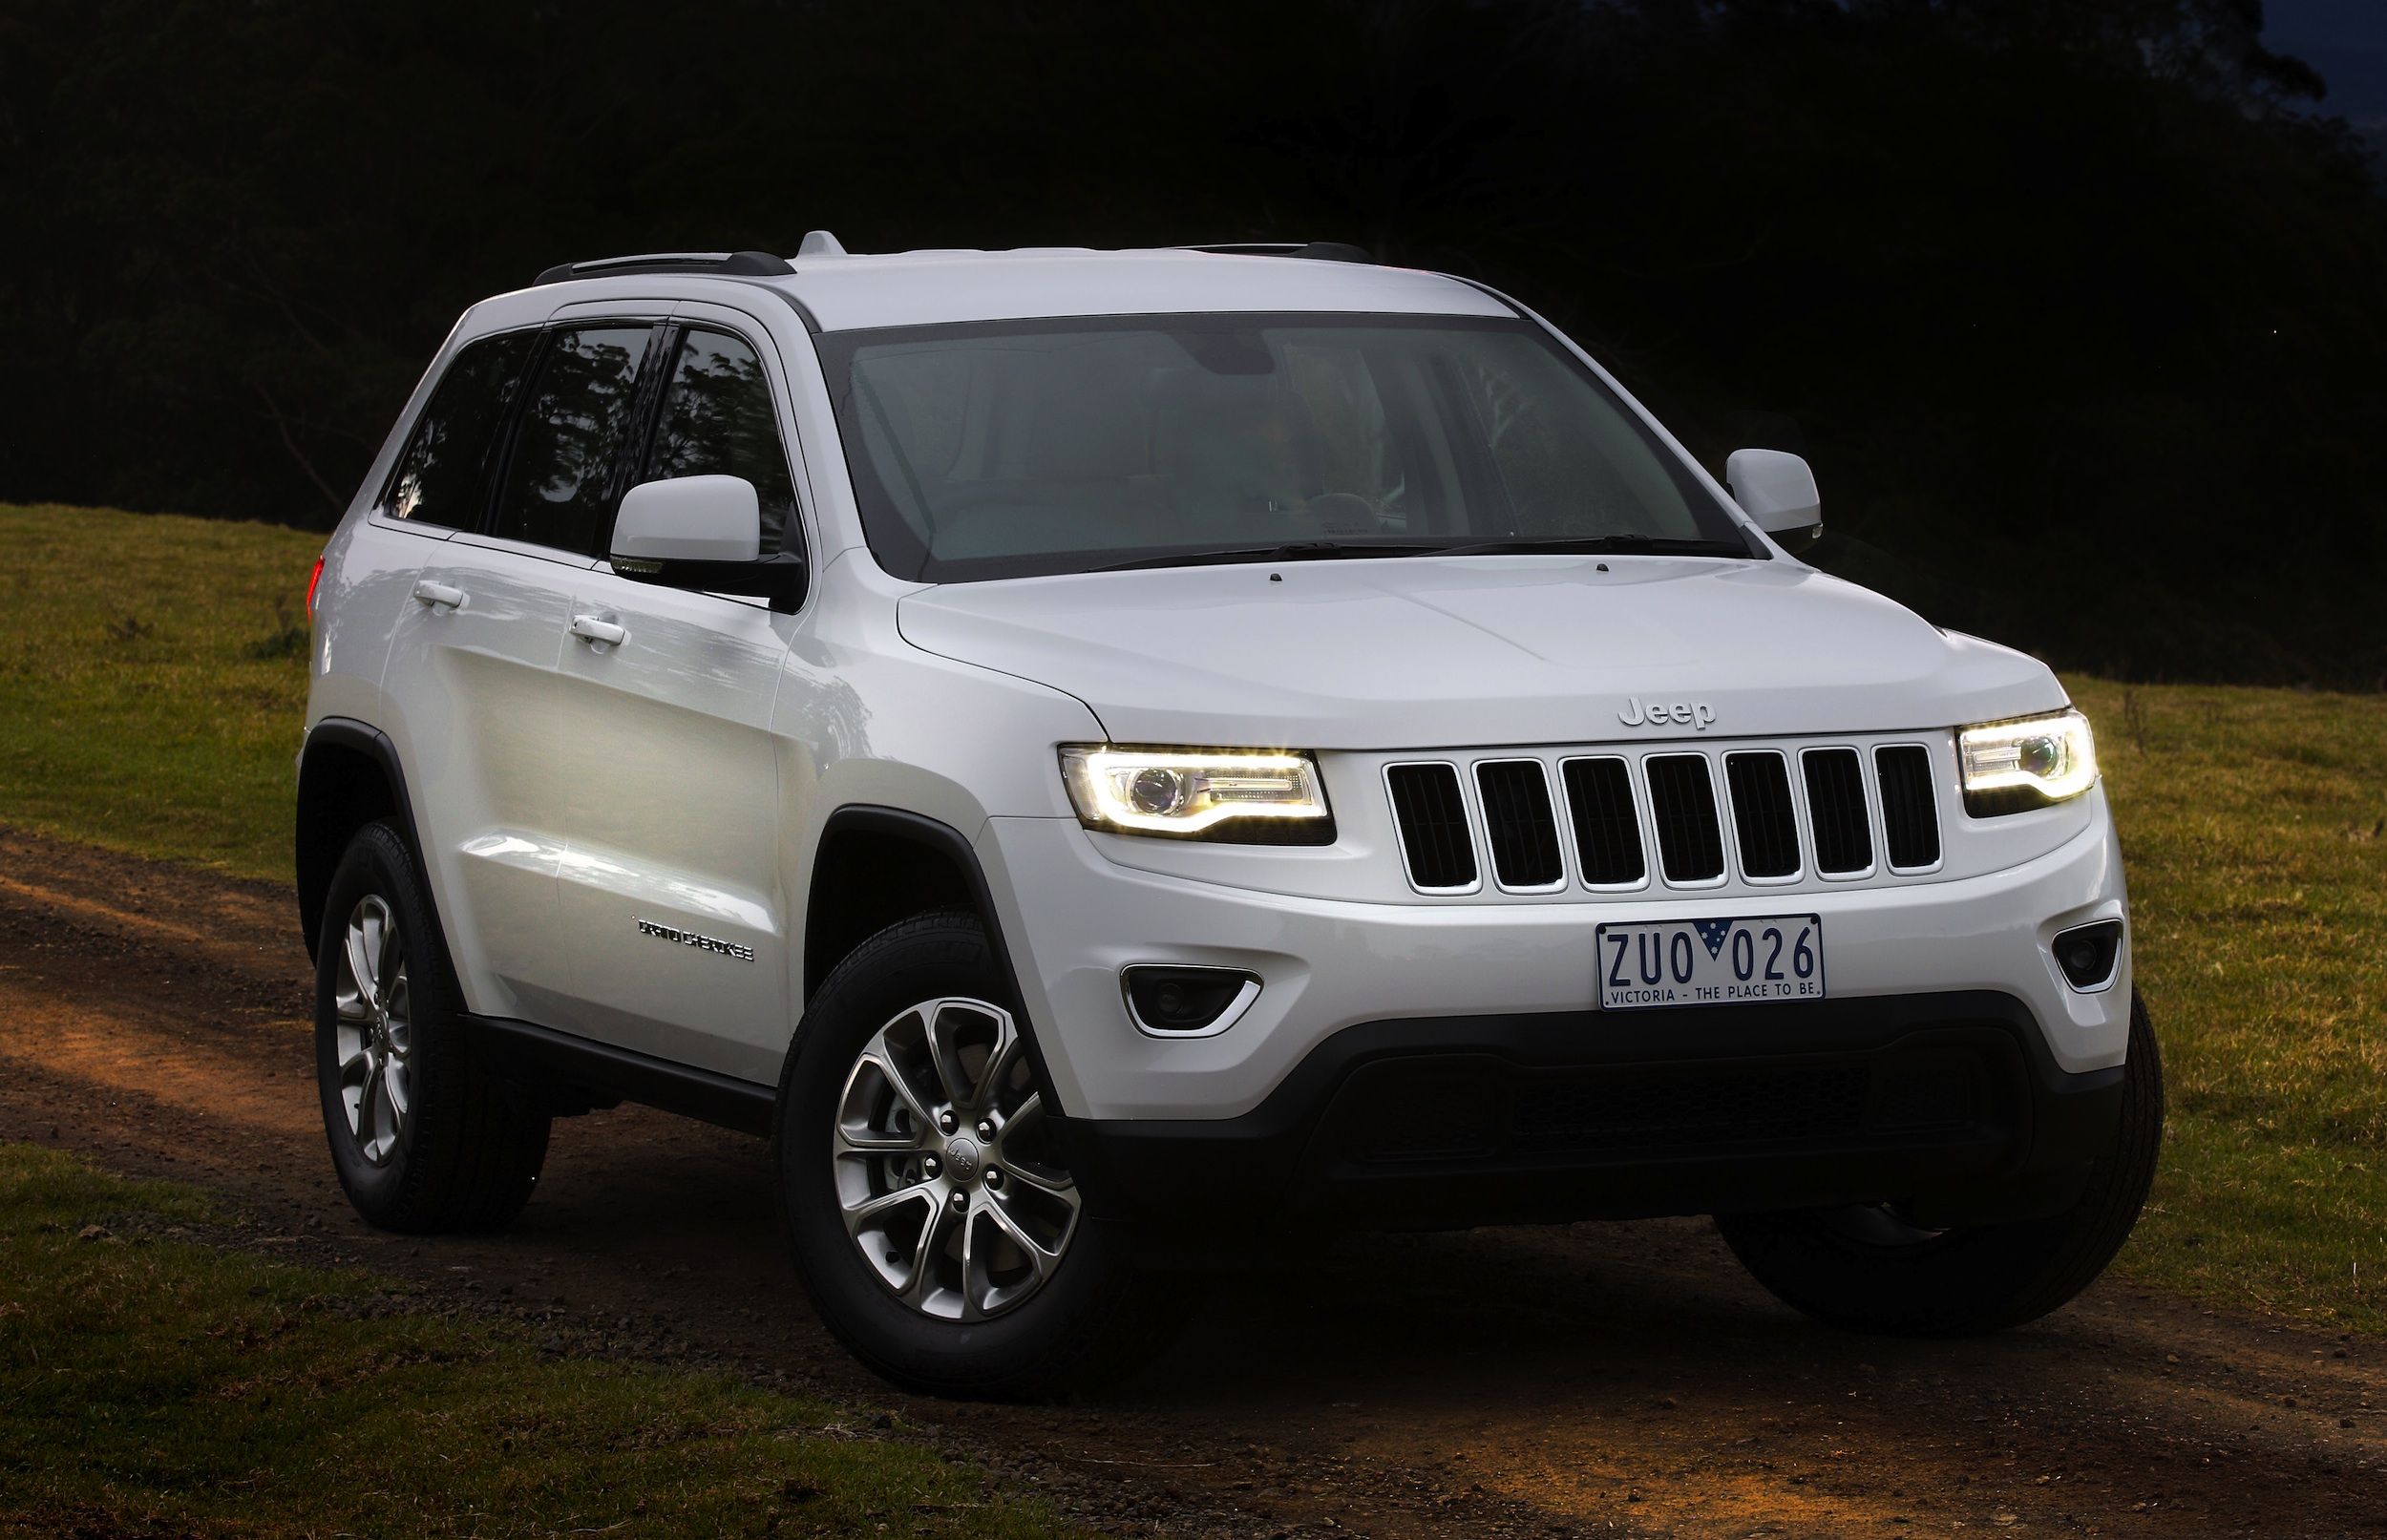 2013 jeep grand cherokee pricing and specifications photos 1 of 10. Black Bedroom Furniture Sets. Home Design Ideas